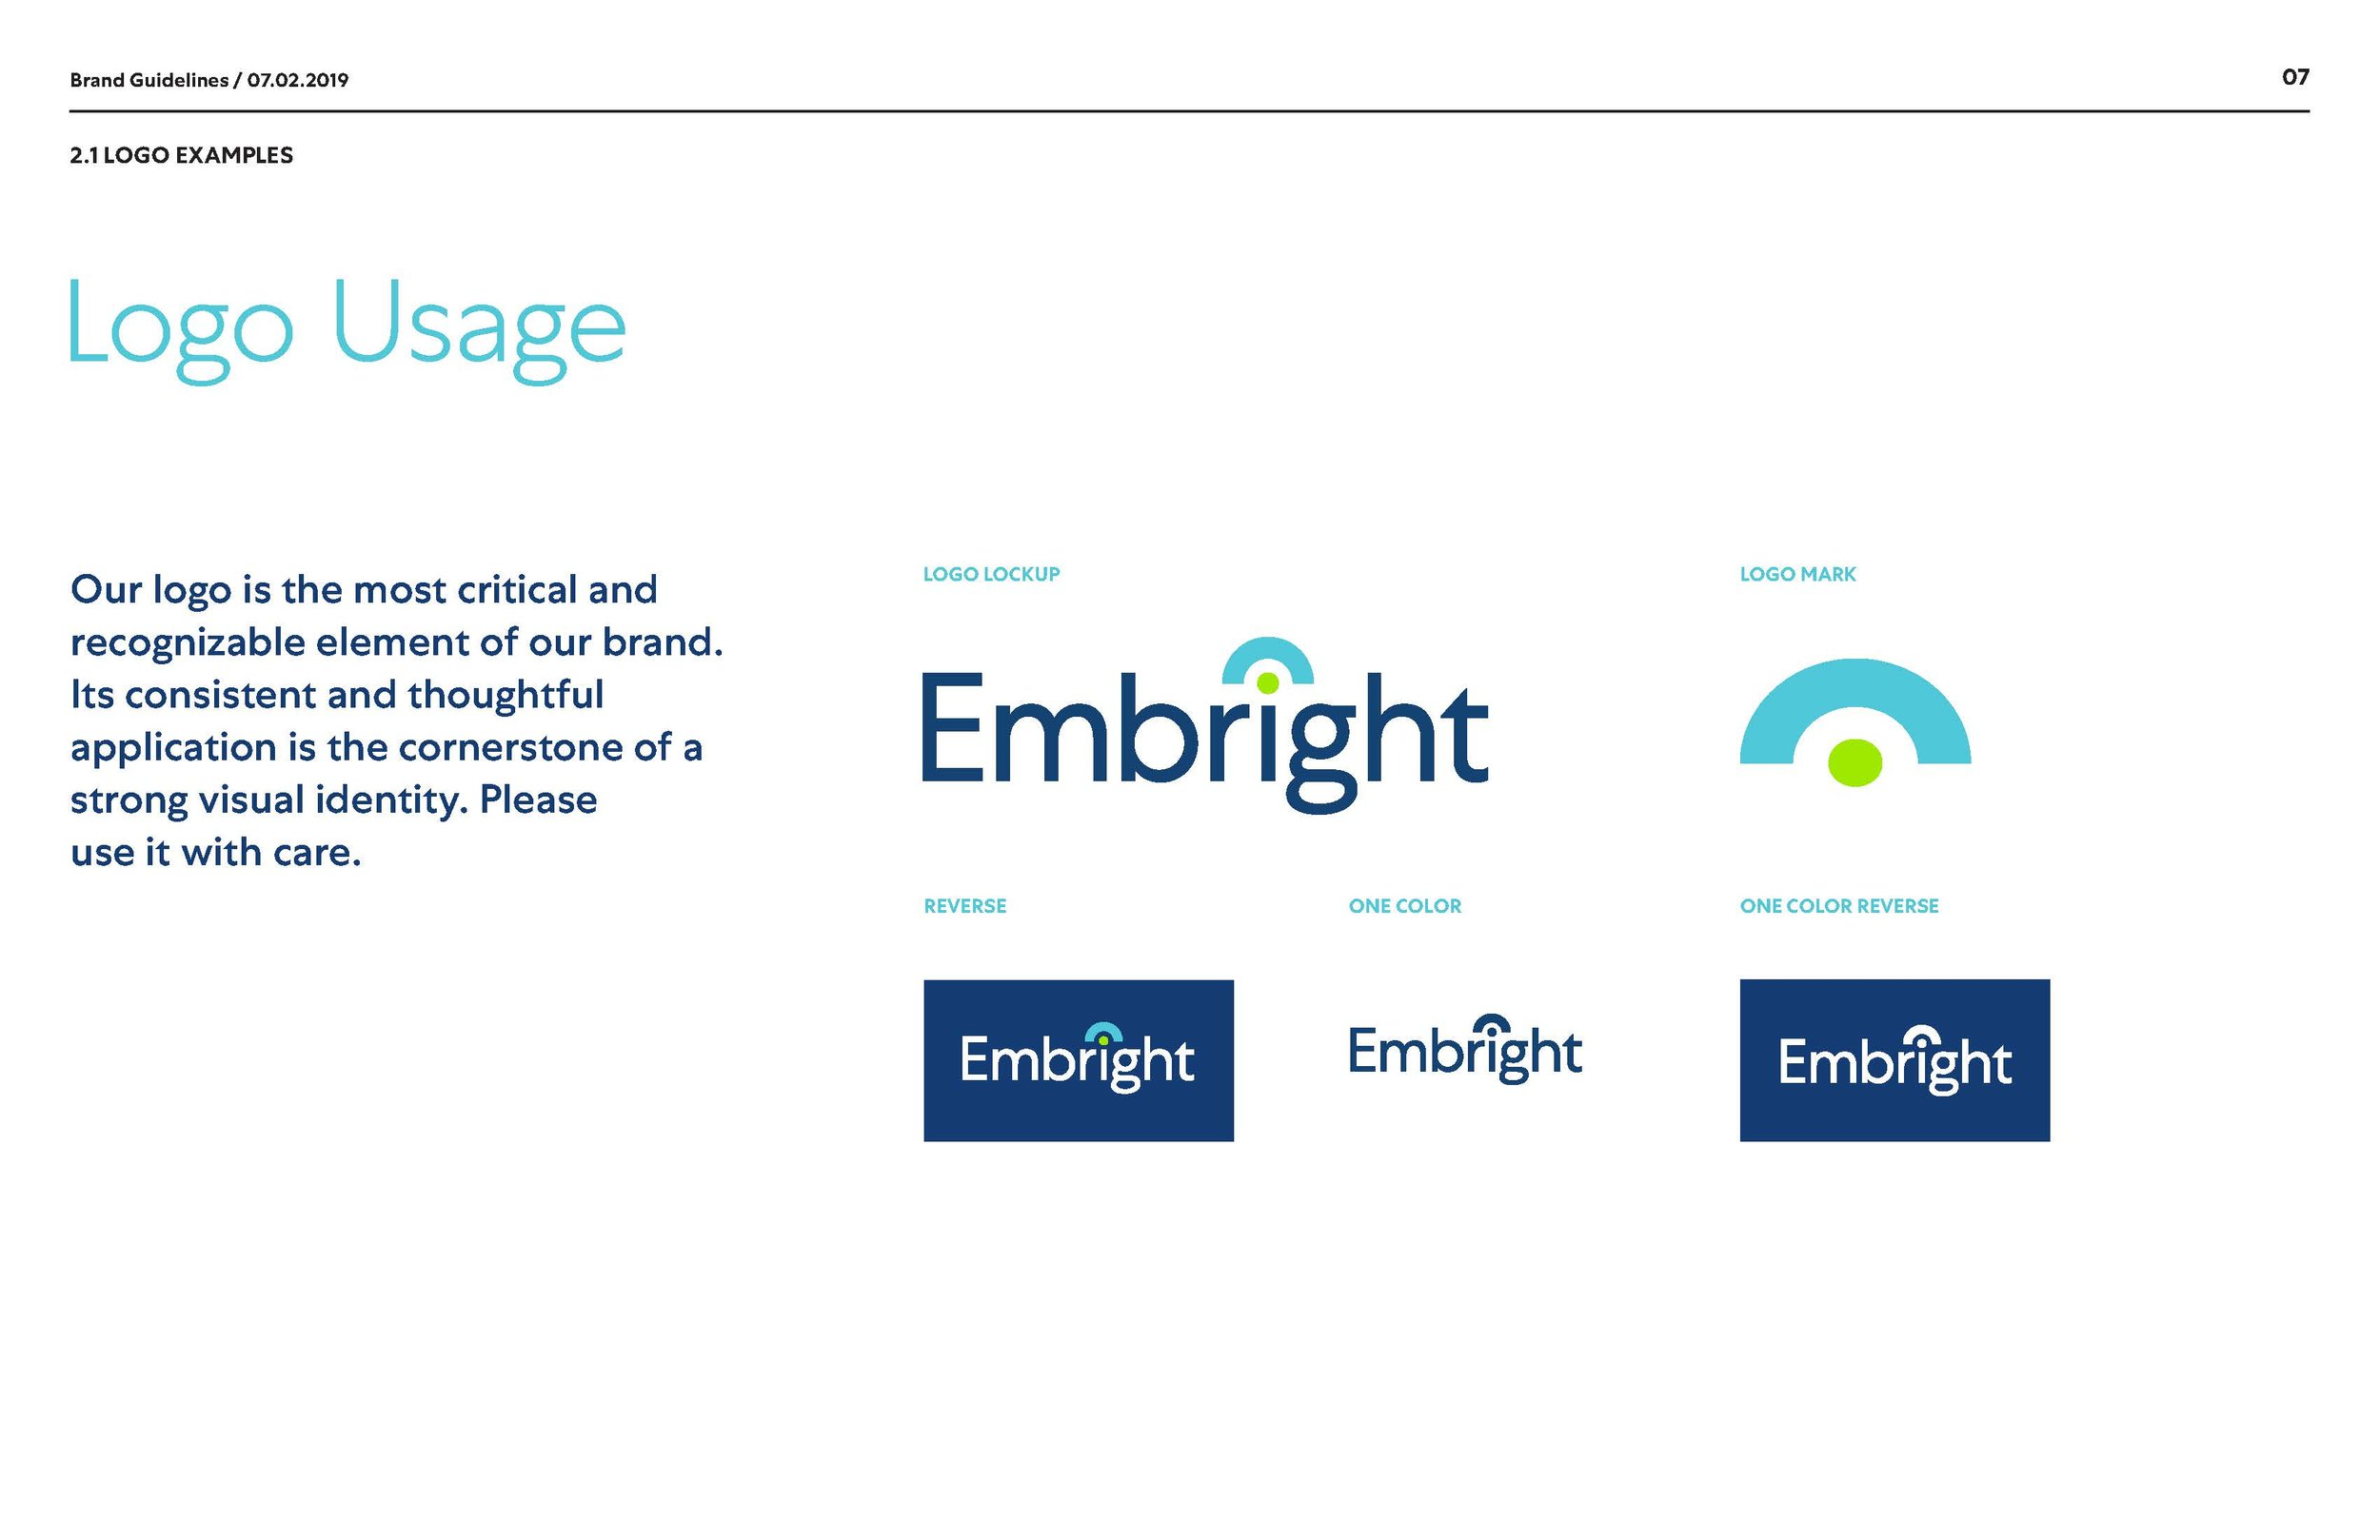 Embright_Brand_Guidelines_070219_Page_07.jpg